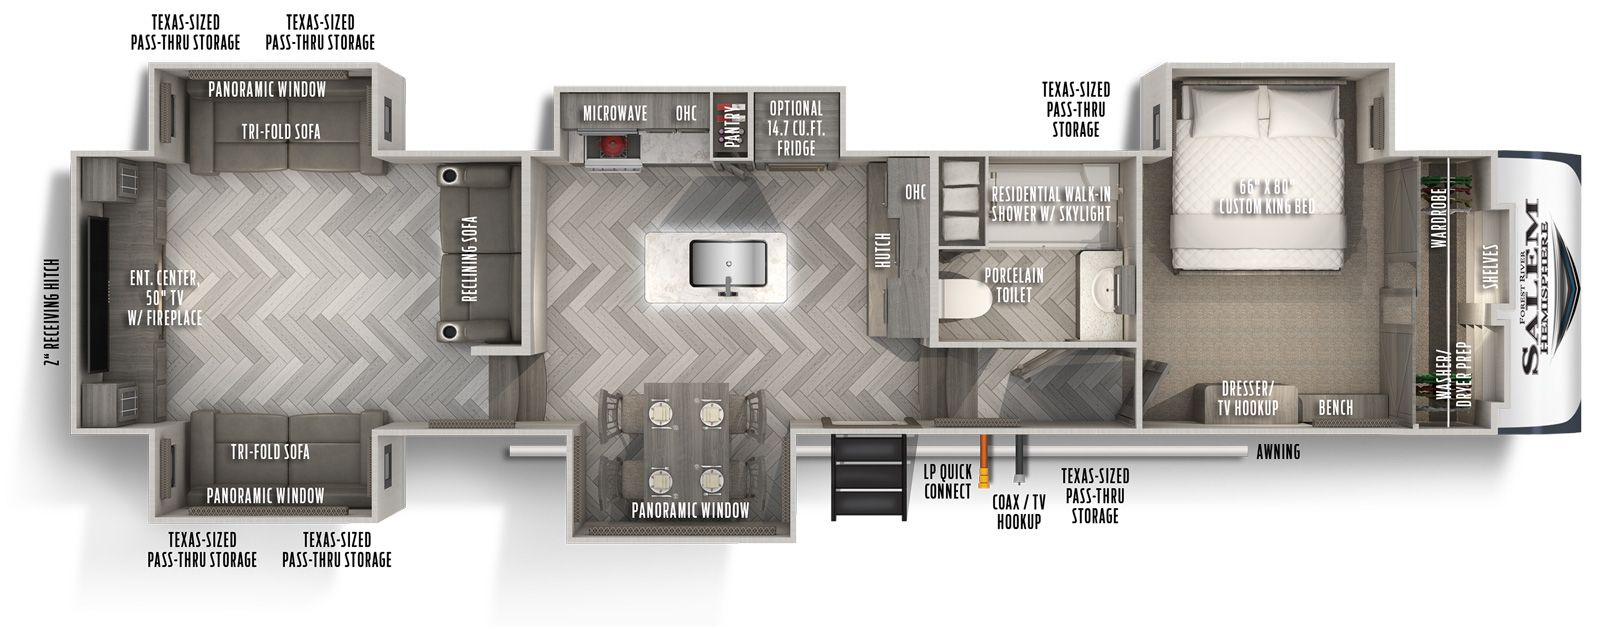 372rd floorplan forest river rv forest river tent campers